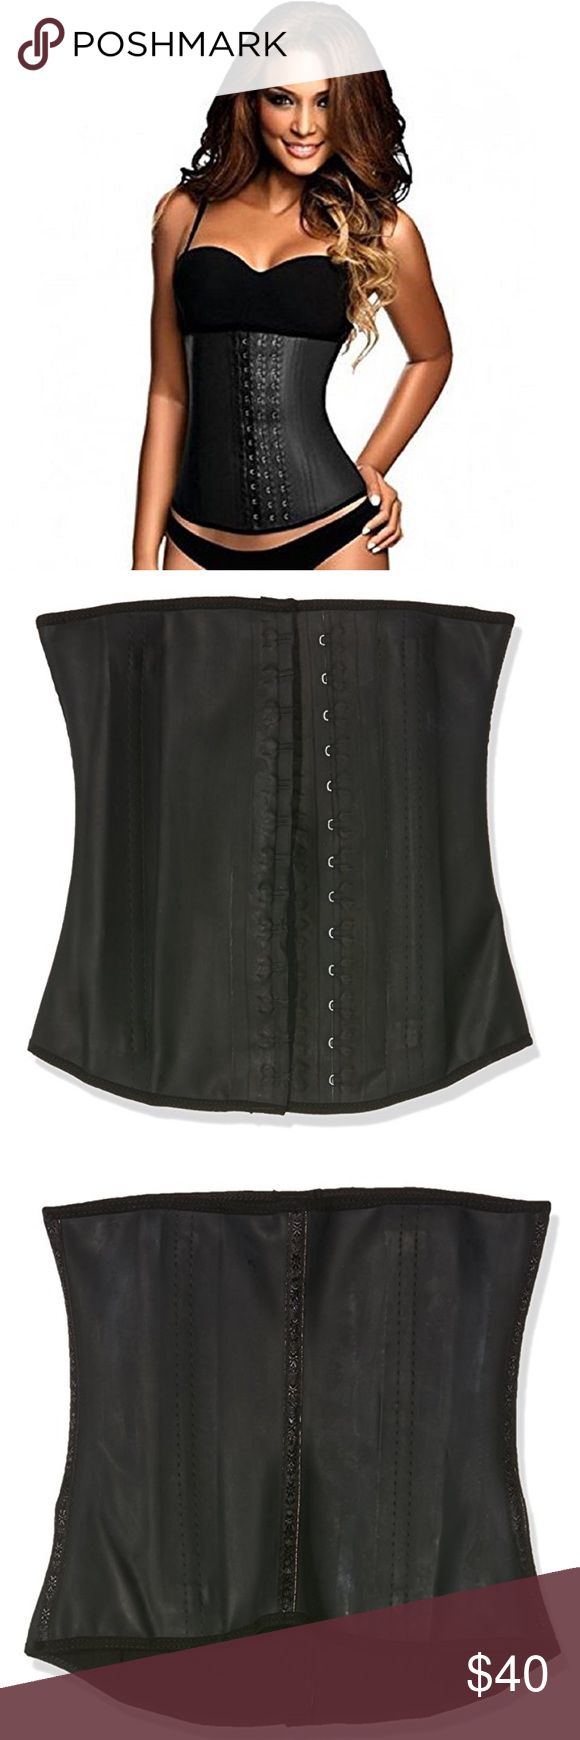 Latex Faja Clasica Waist Cincher Medium 34 W wrap the band around your midsection. This action creates compression in your core, stimulating thermal activity and ramping up perspiration. This process mobilizes fat cells. The band itself is constructed from a latex core with a soft cotton exterior and interior lining. It sits at your waist, extending to the upper abdominals. Two columns of hook-and-eye closures allow you to size the garment down with you. Felix boning anchors the cincher and…